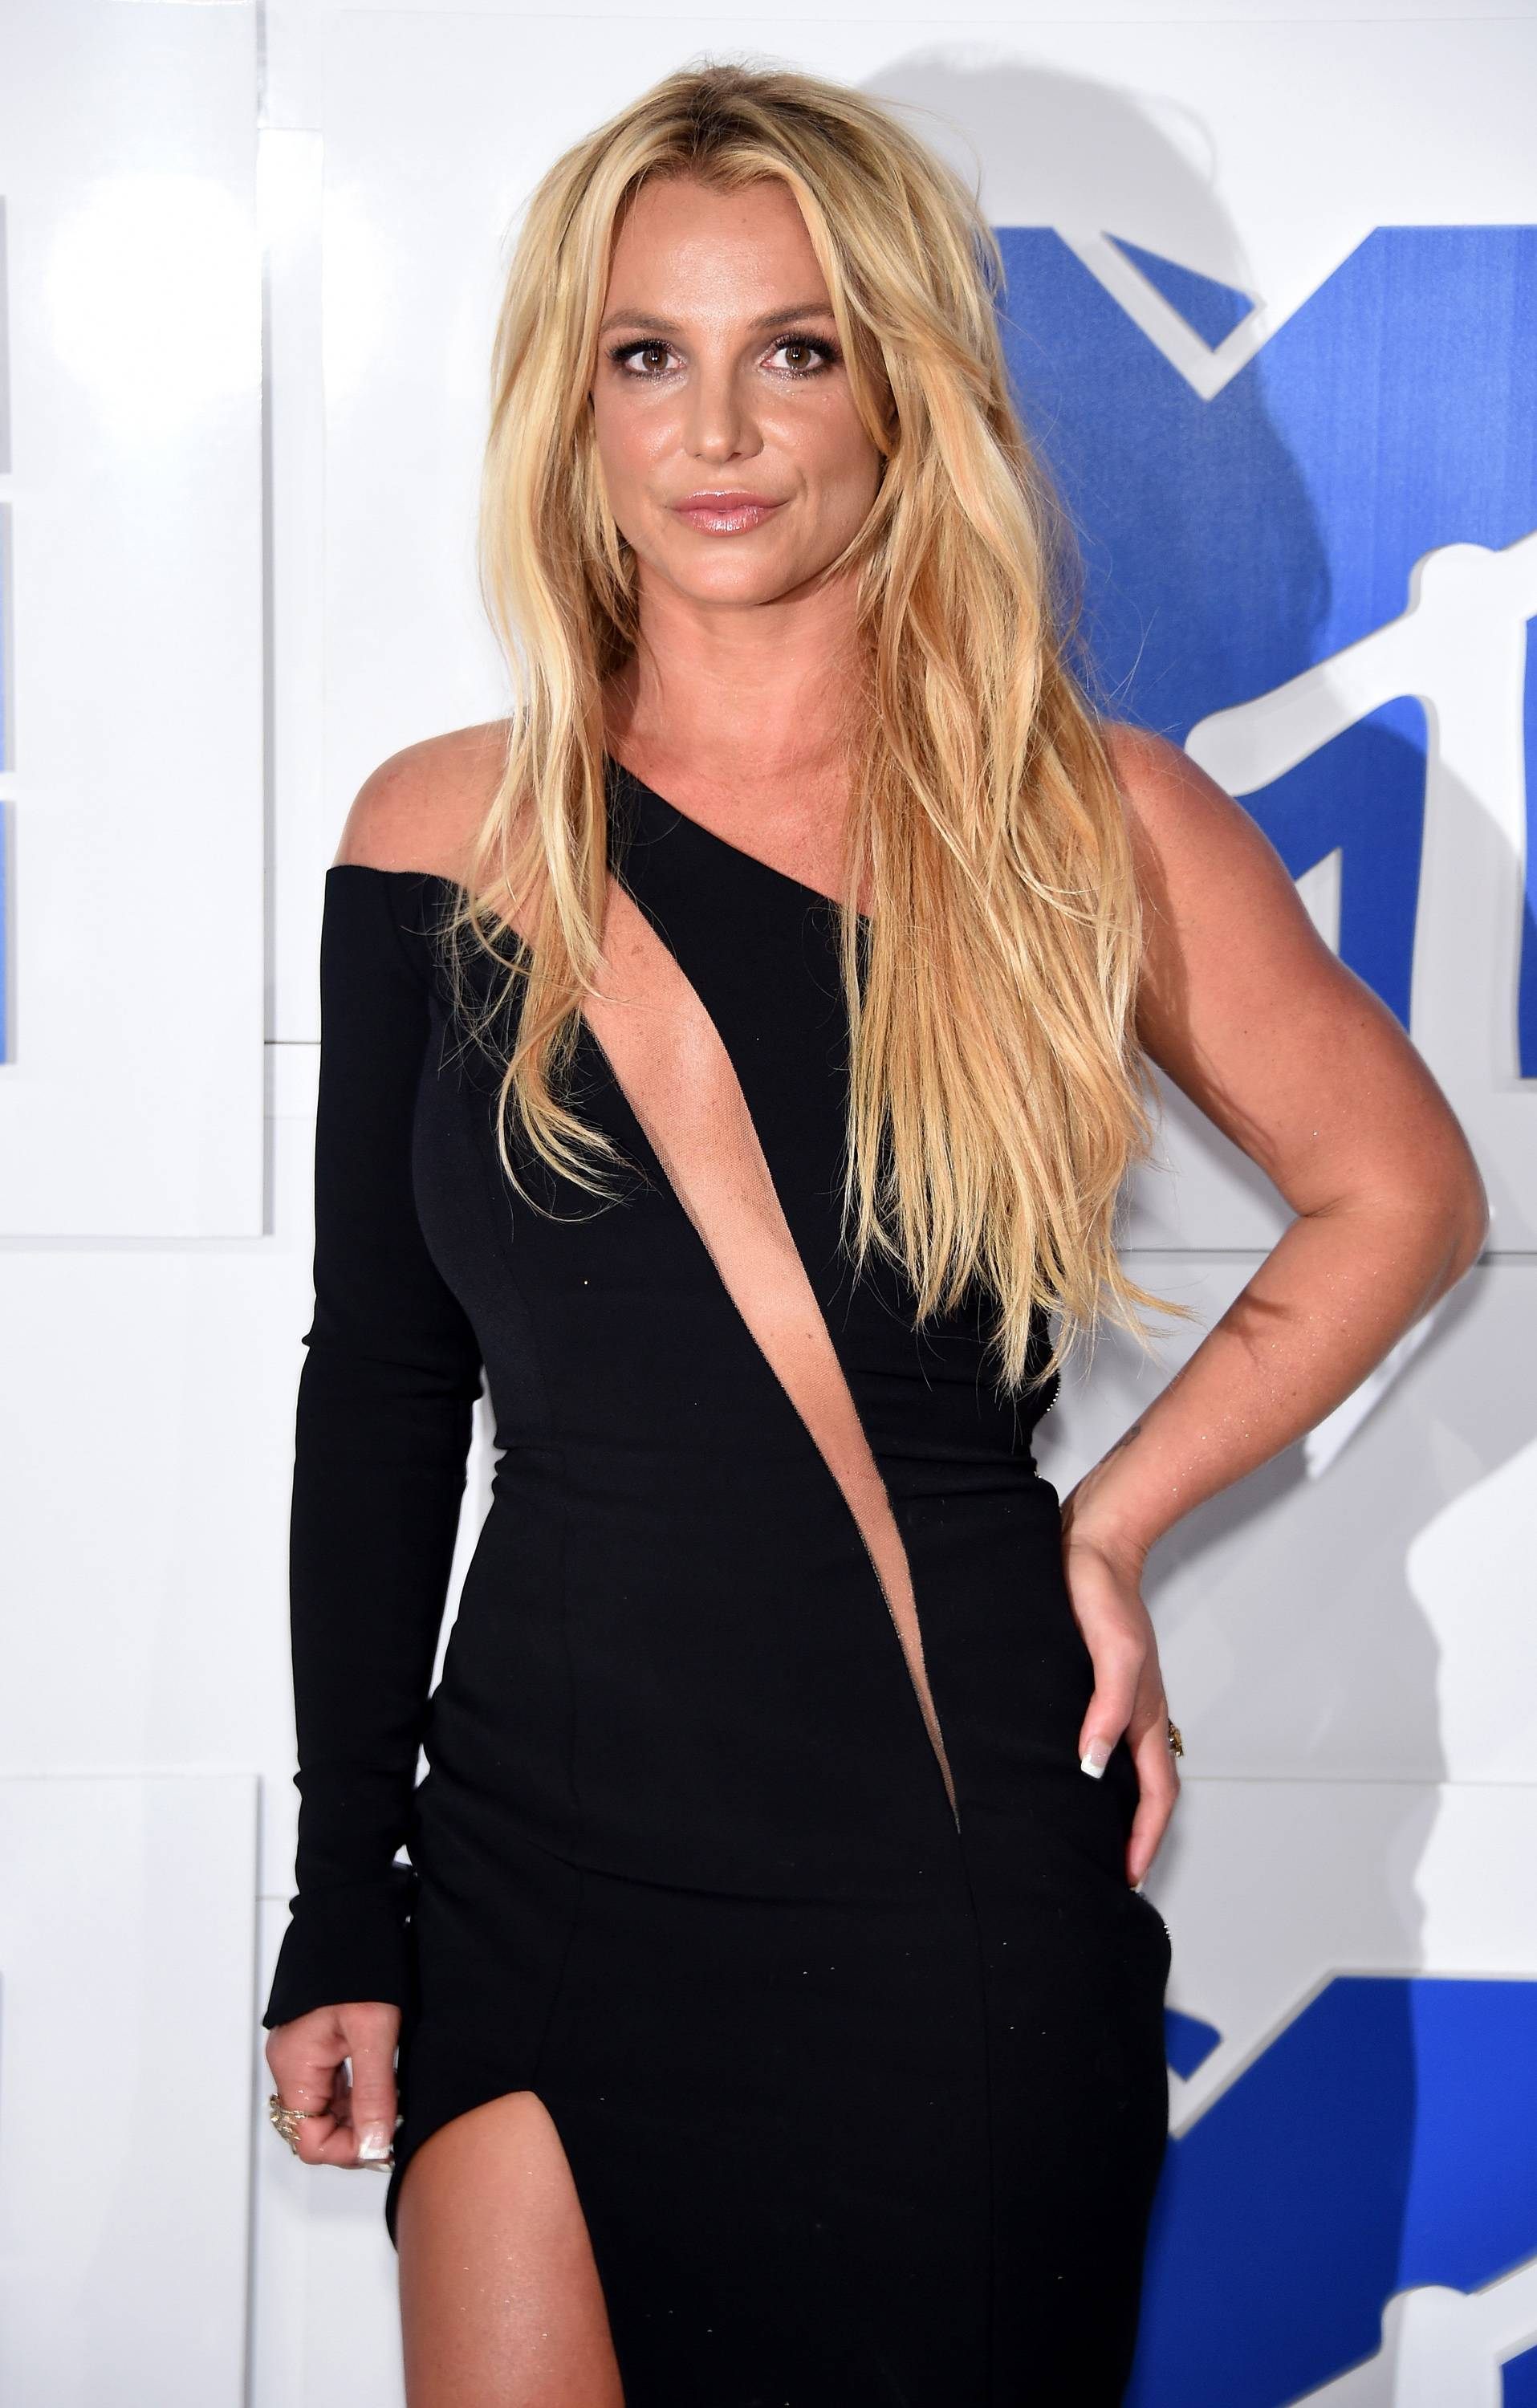 Britney Spears turns heads in her cut-out asymmetrical black dress on the 2016 VMA Red Carpet.